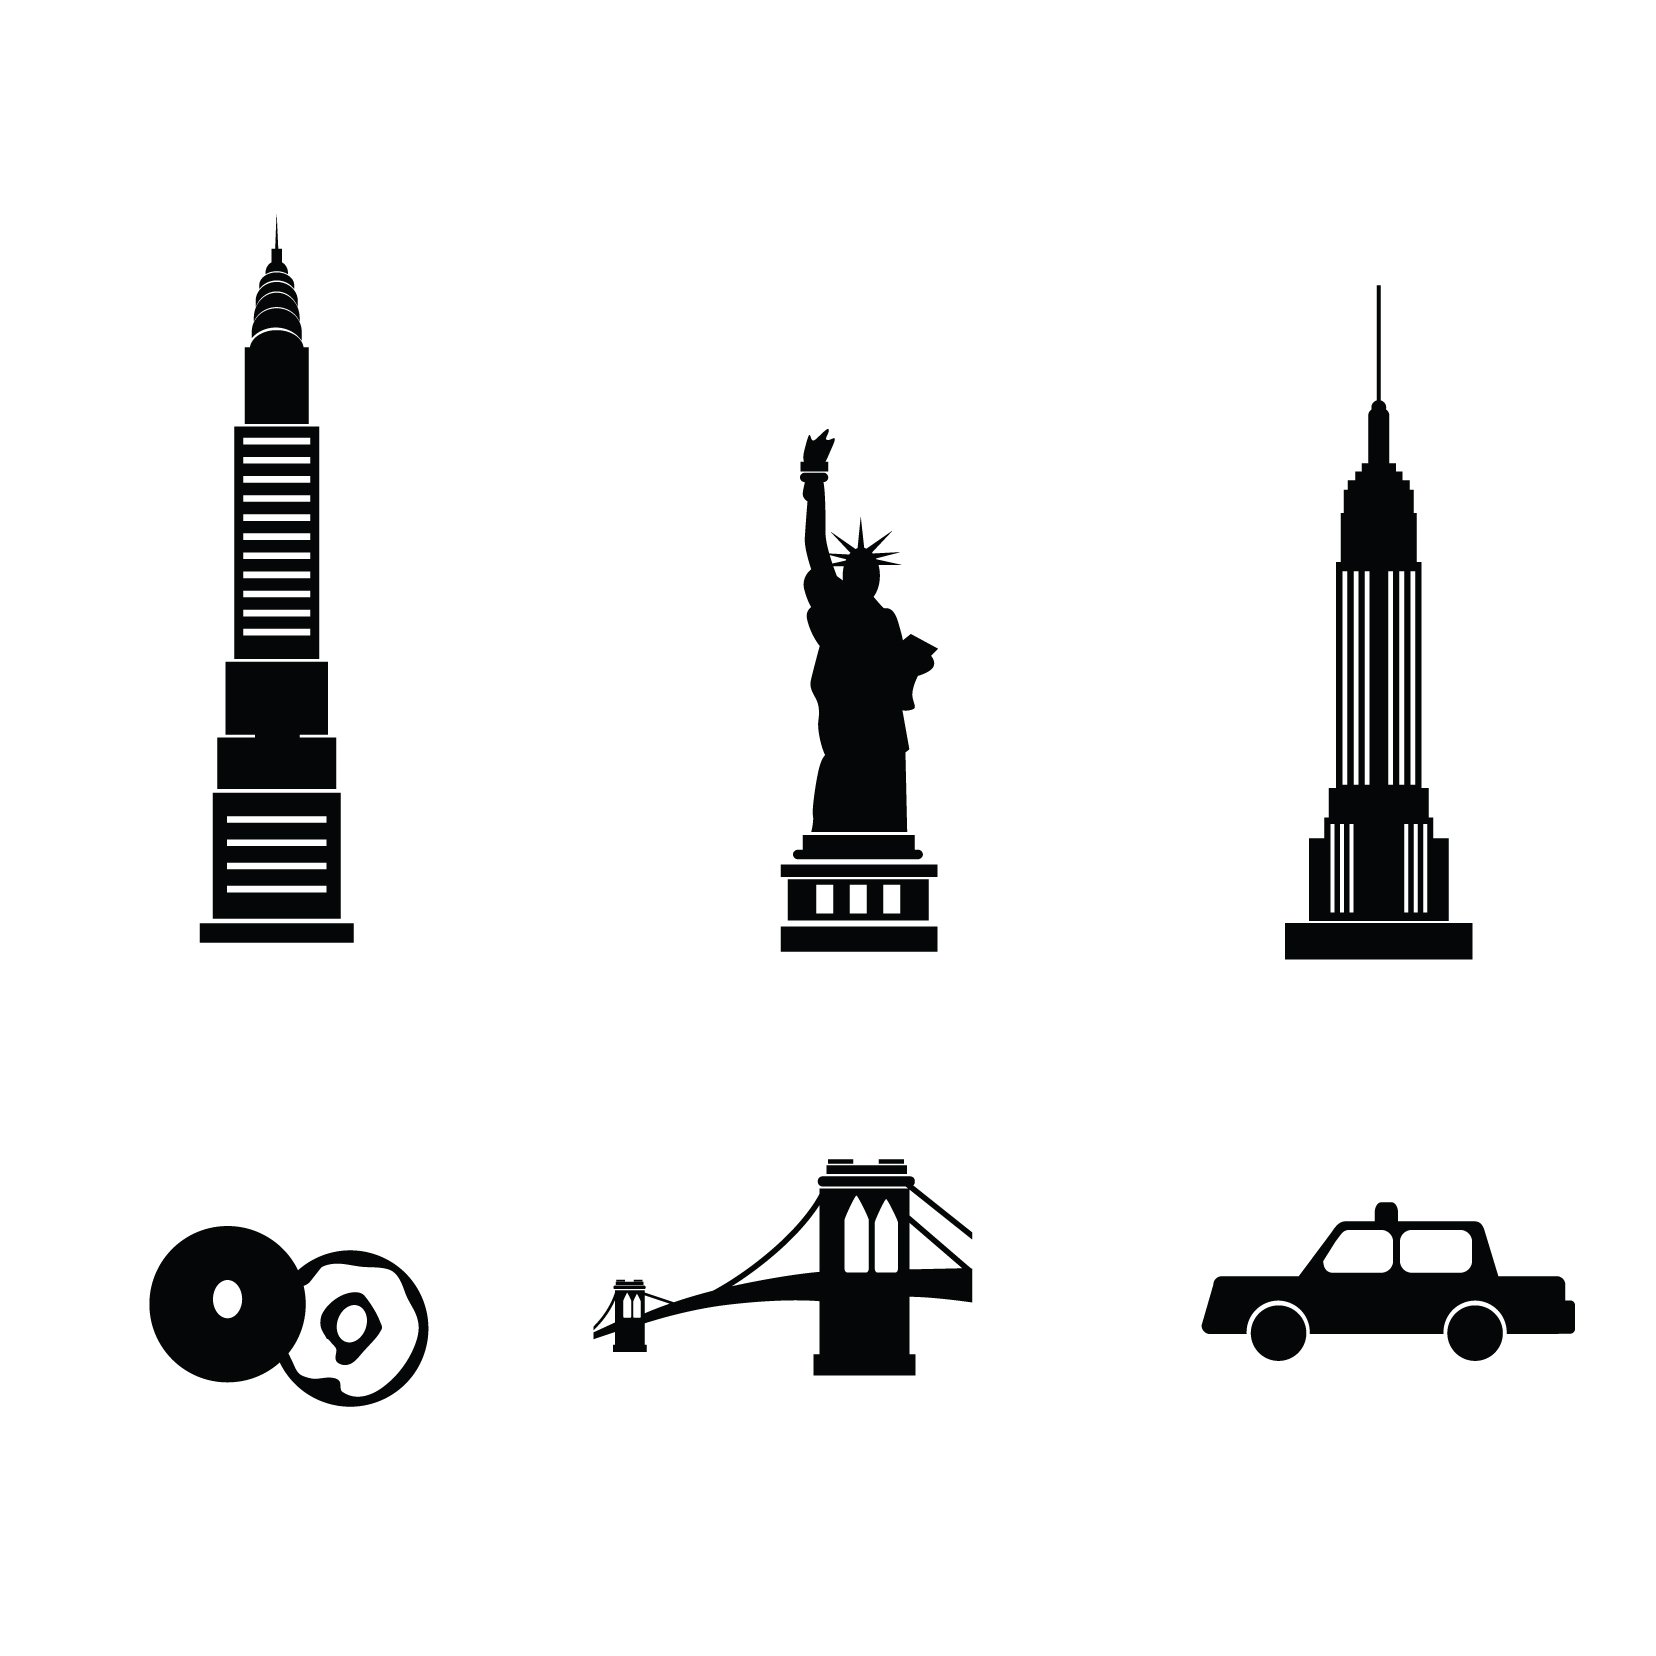 New York Icons - 5 sets, 30 icons - Vinyl Wall Art Decal for Homes, Offices, Kids Rooms, Nurseries, Schools, High Schools, Colleges, Universities, Interior Designers, Architects, Remodelers